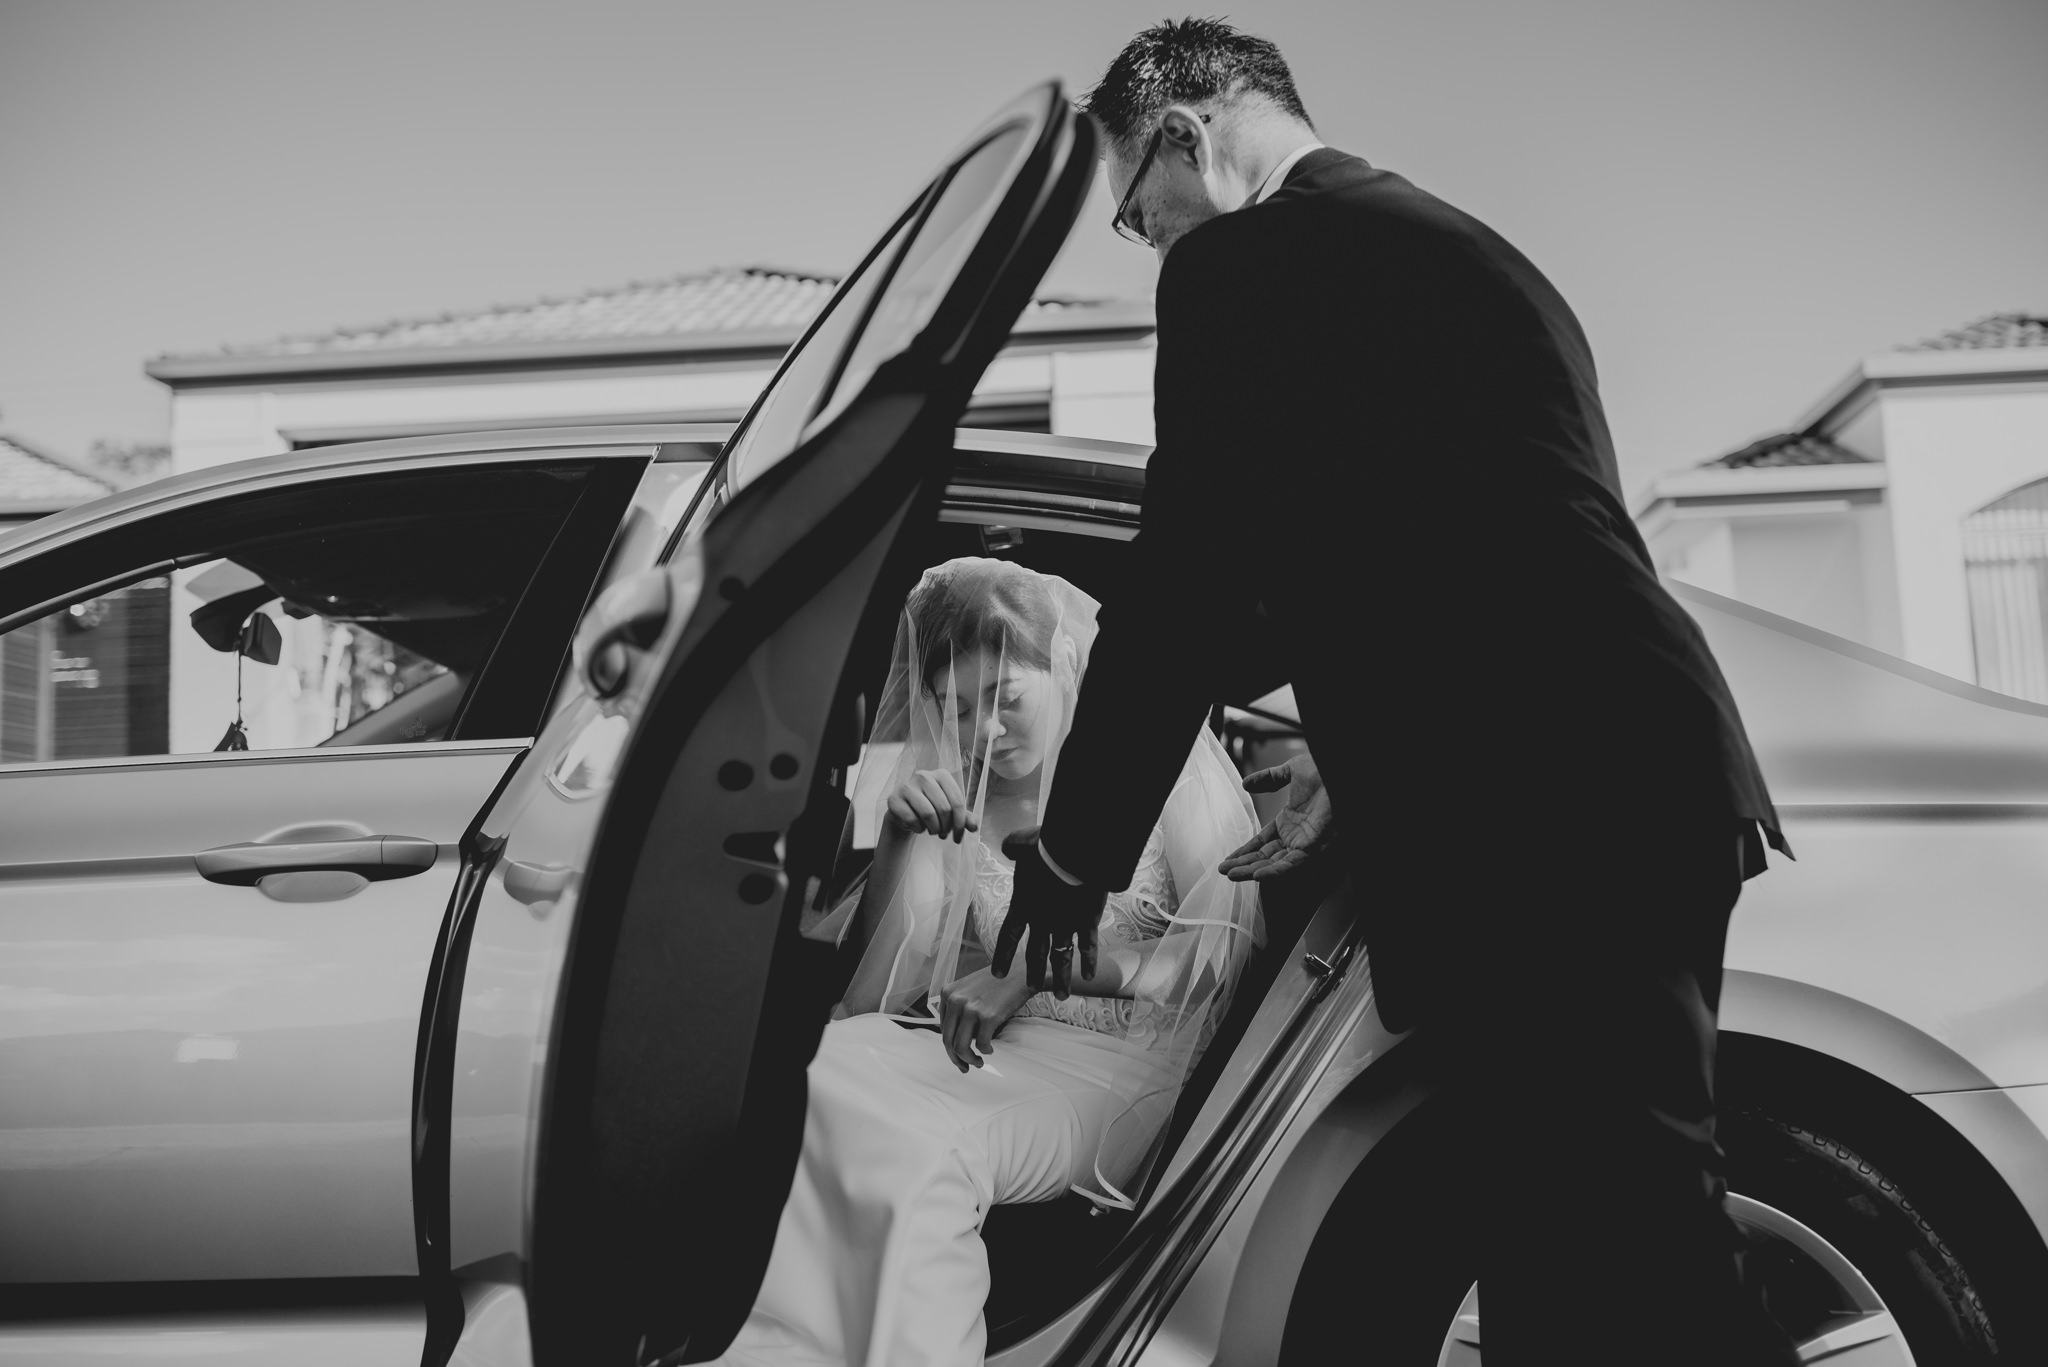 A man reaches his hands out to assist a bride out of a white car